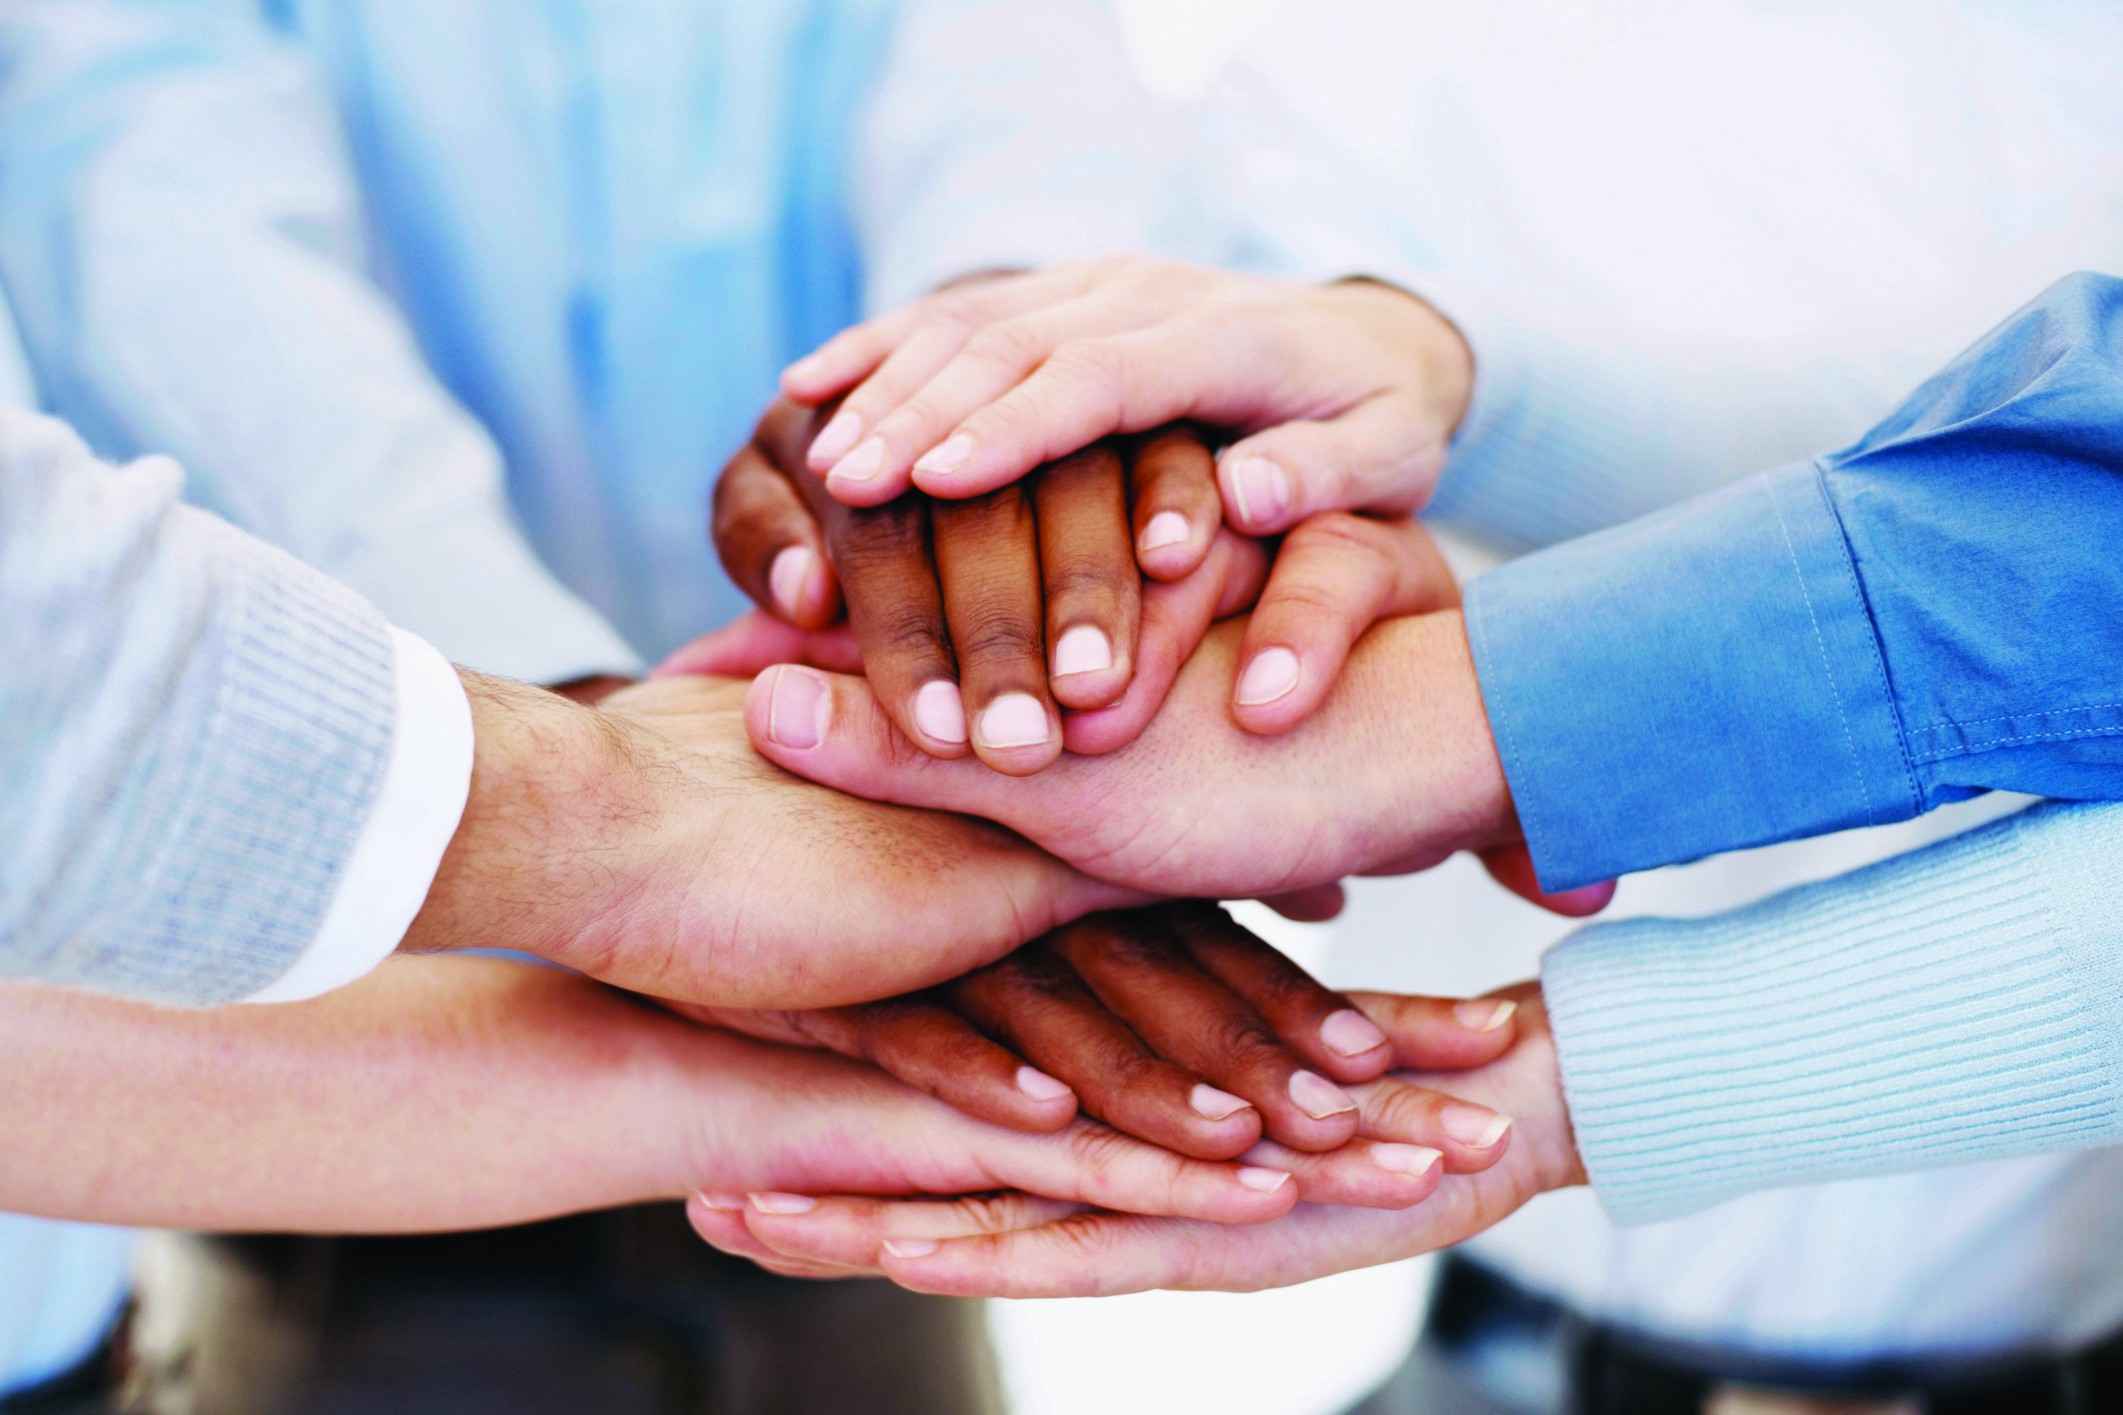 A series of different coloured human hands piled on top of each other, as to signify teamwork from a group of people